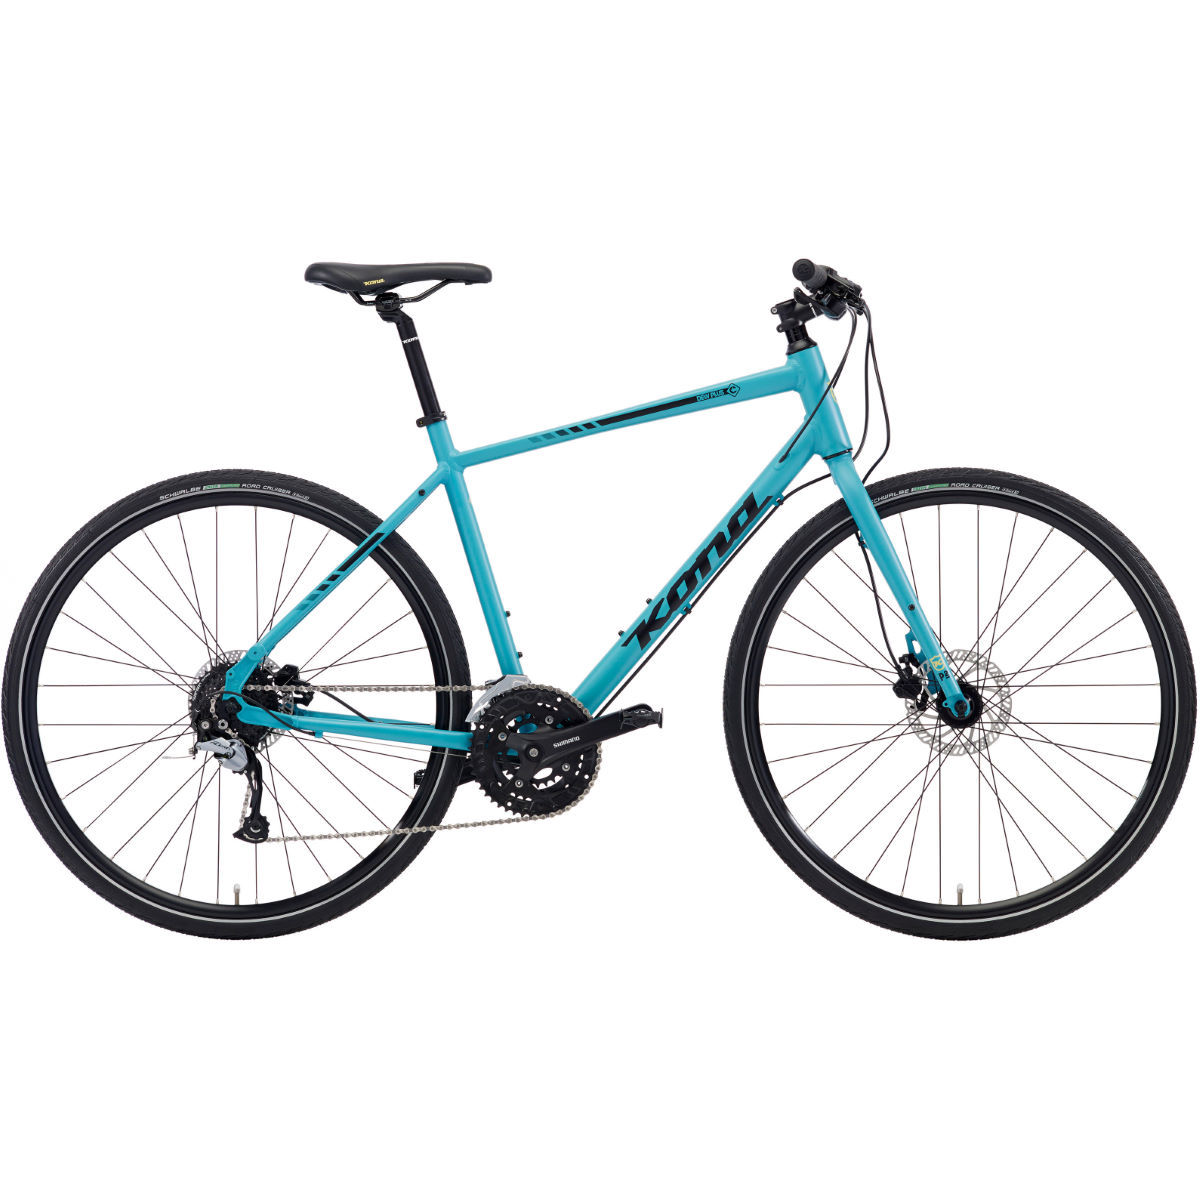 Vélo de route Kona Dew Plus (2018) - 48cm Stock Bike Seafoam